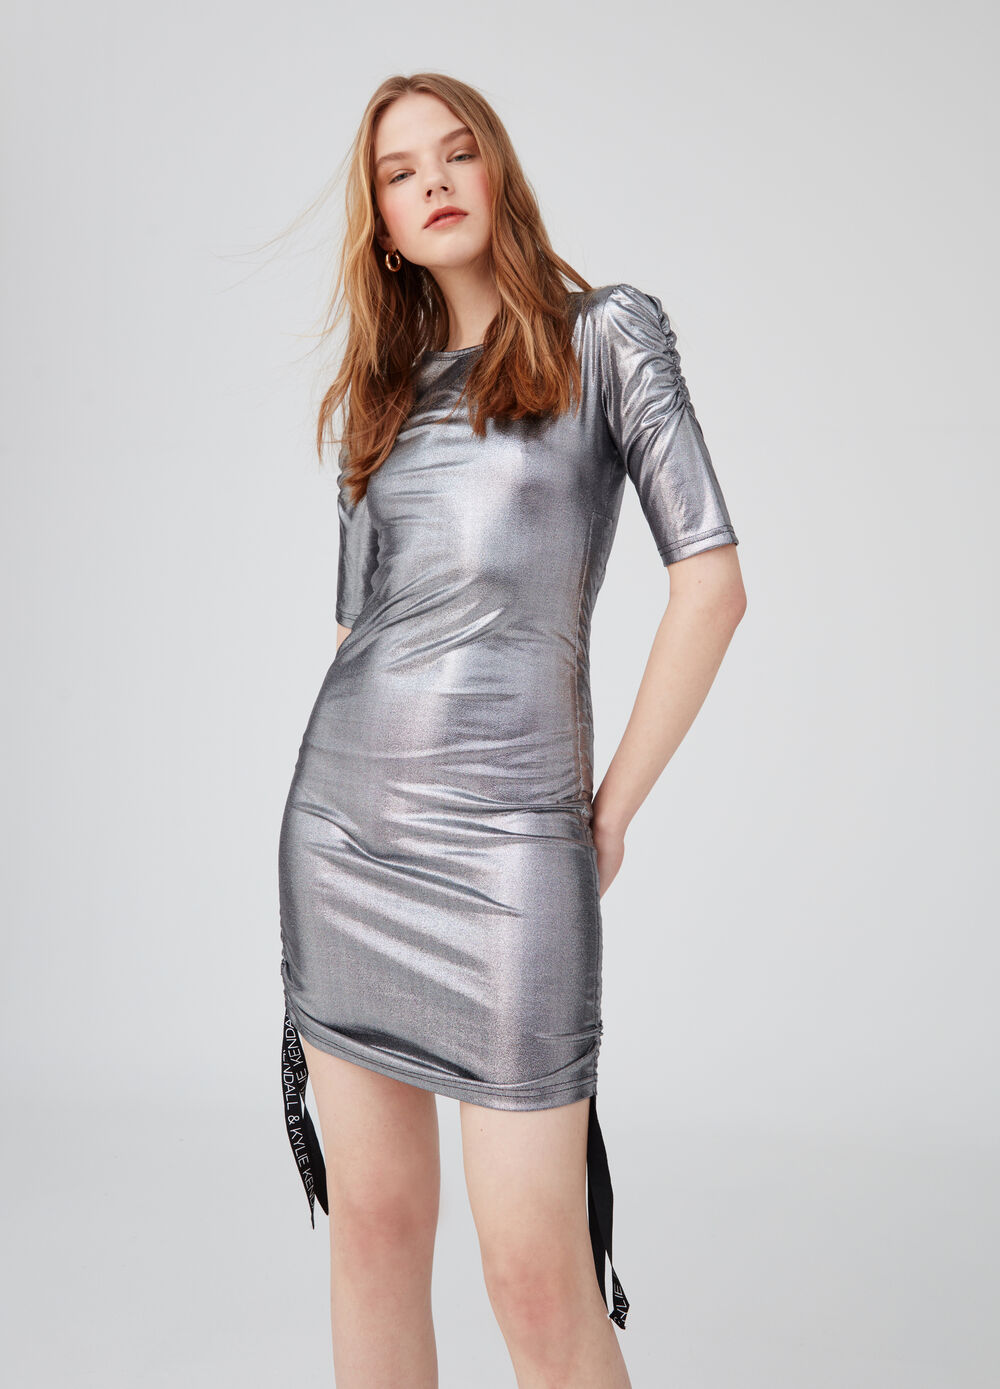 K+K for OVS tube dress with elbow-length sleeves